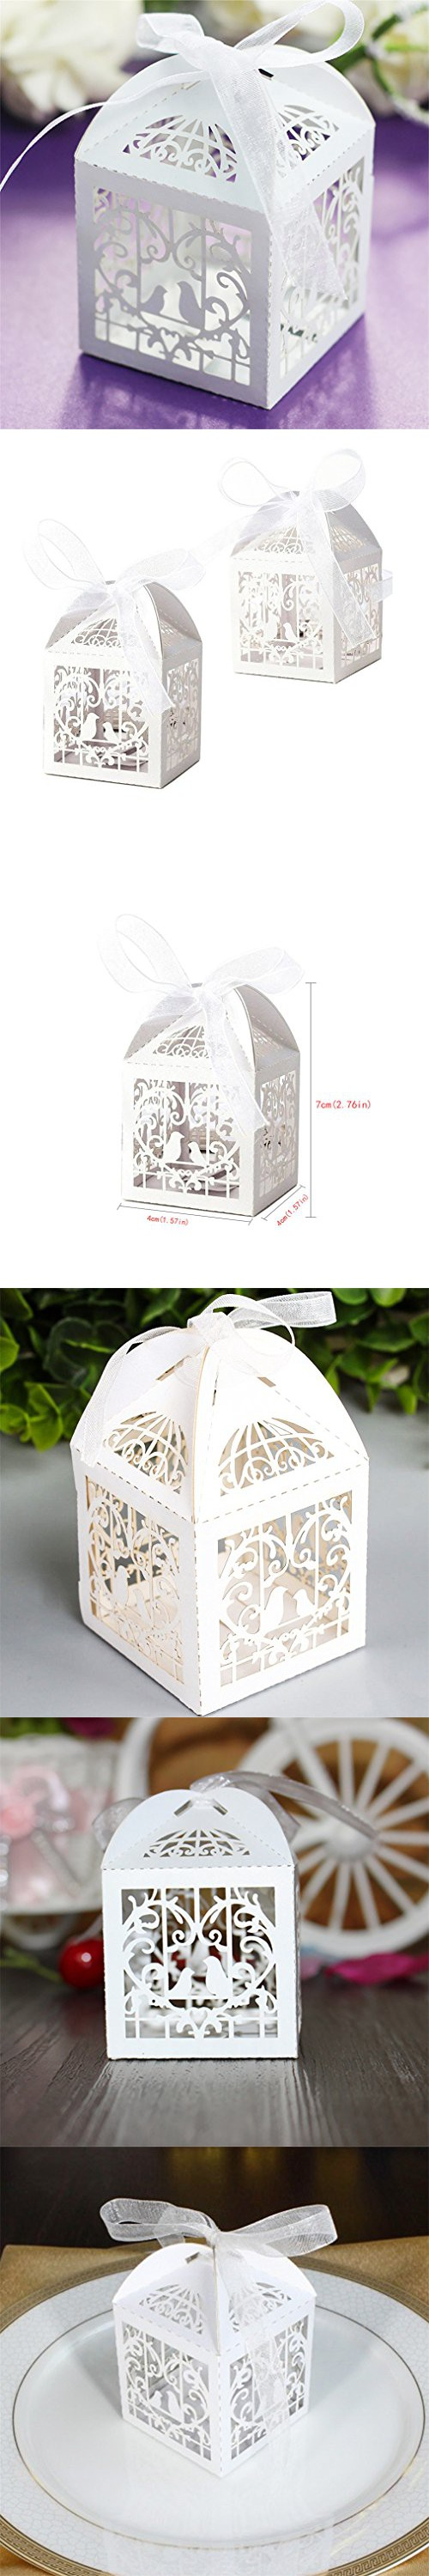 Amytalk 50 Pcs Laser Cut Wedding Favors Candy Boxes Pearl Paper ...